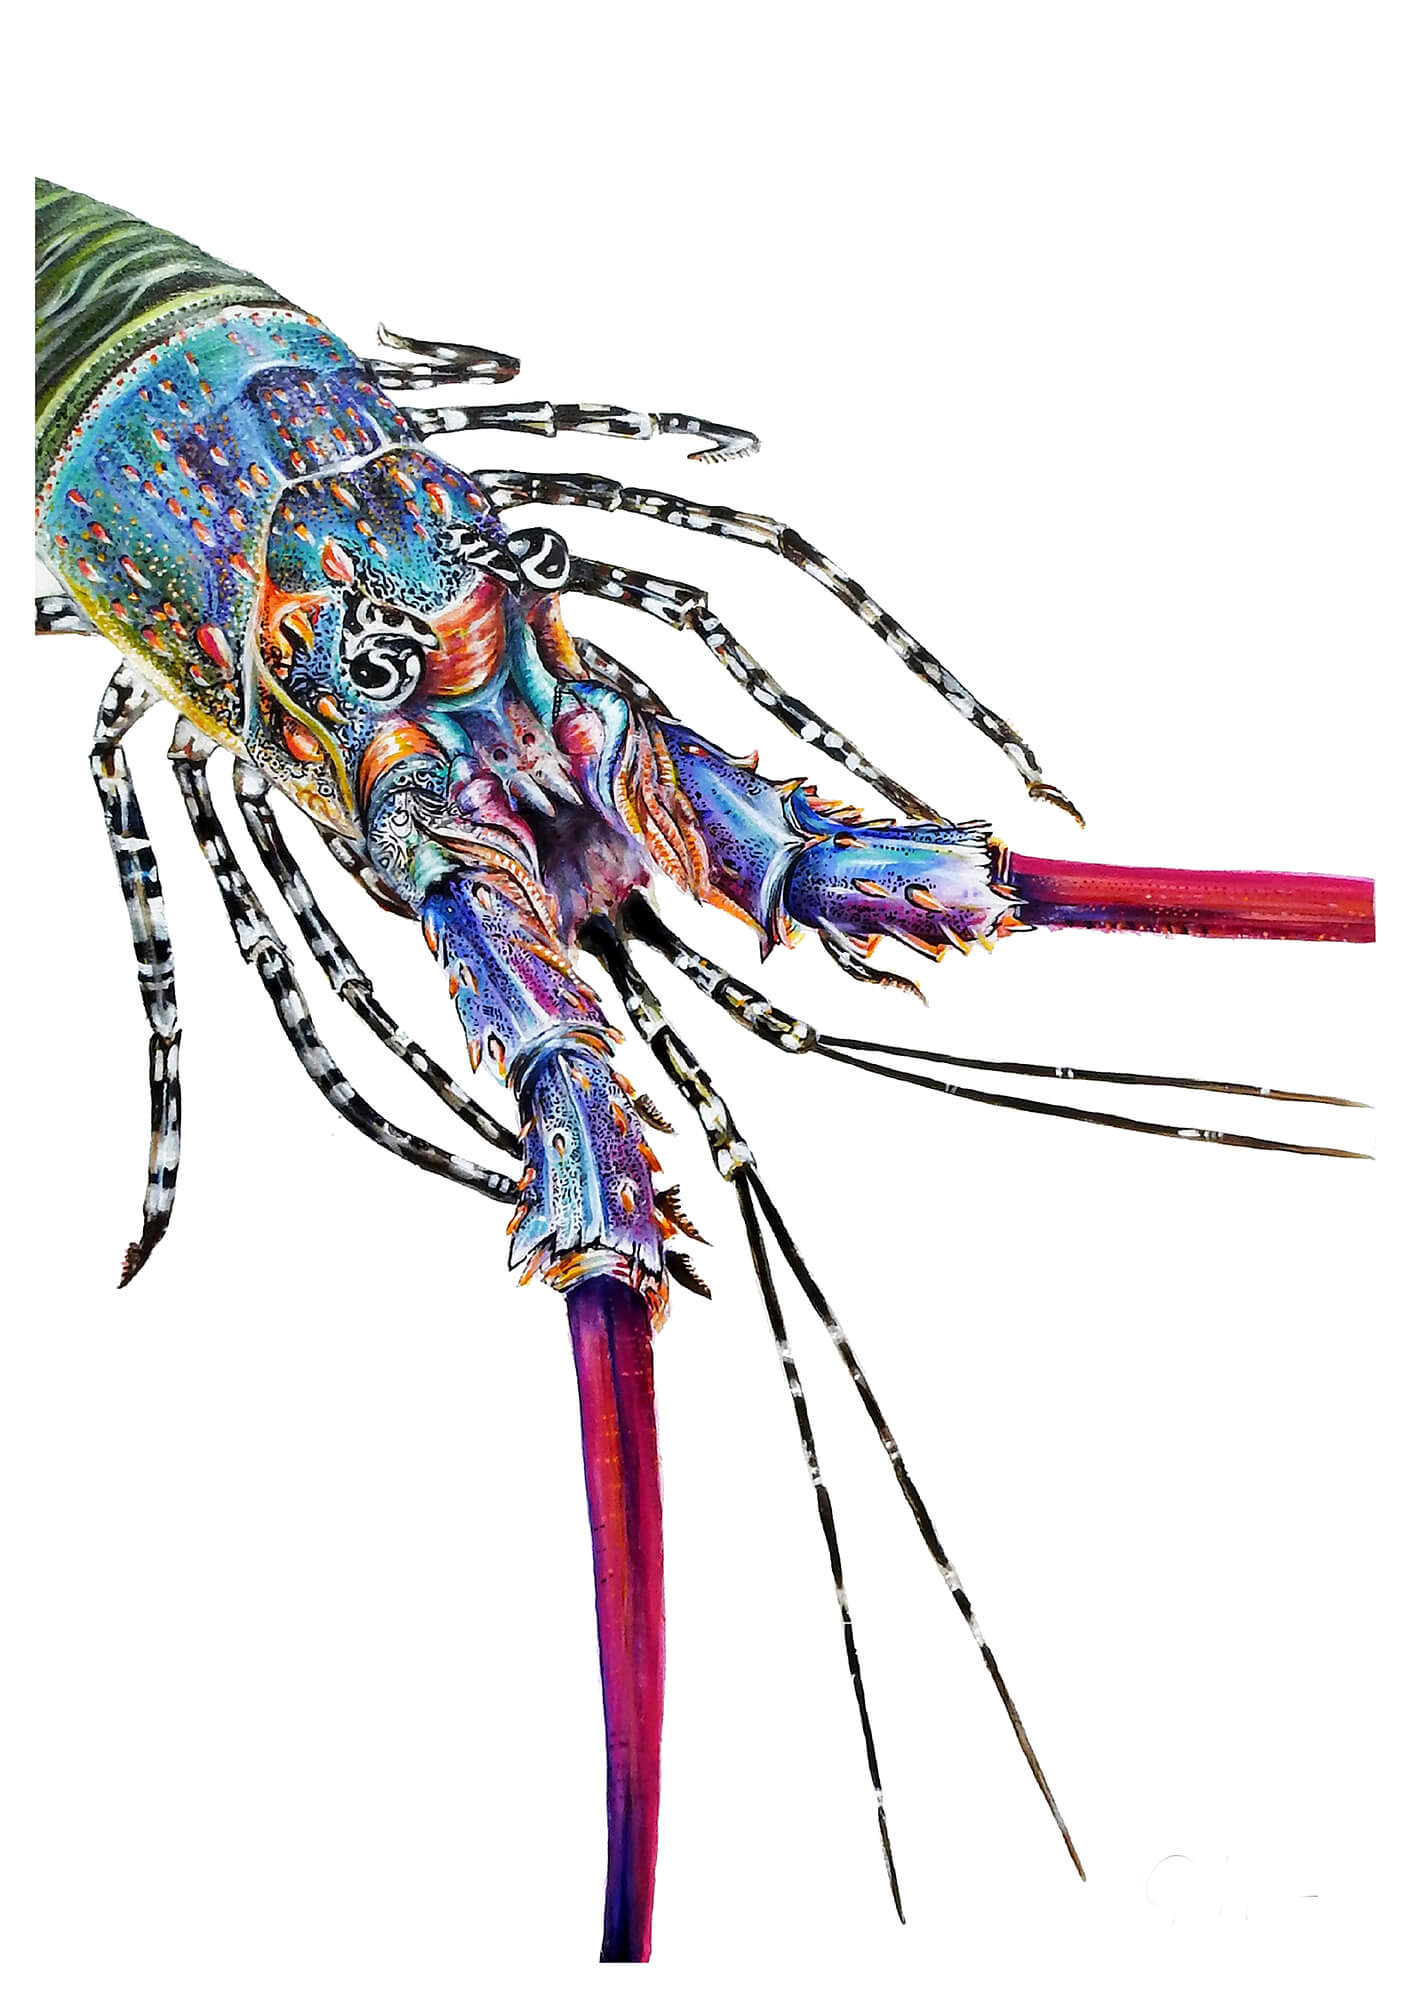 The Painted Crayfish